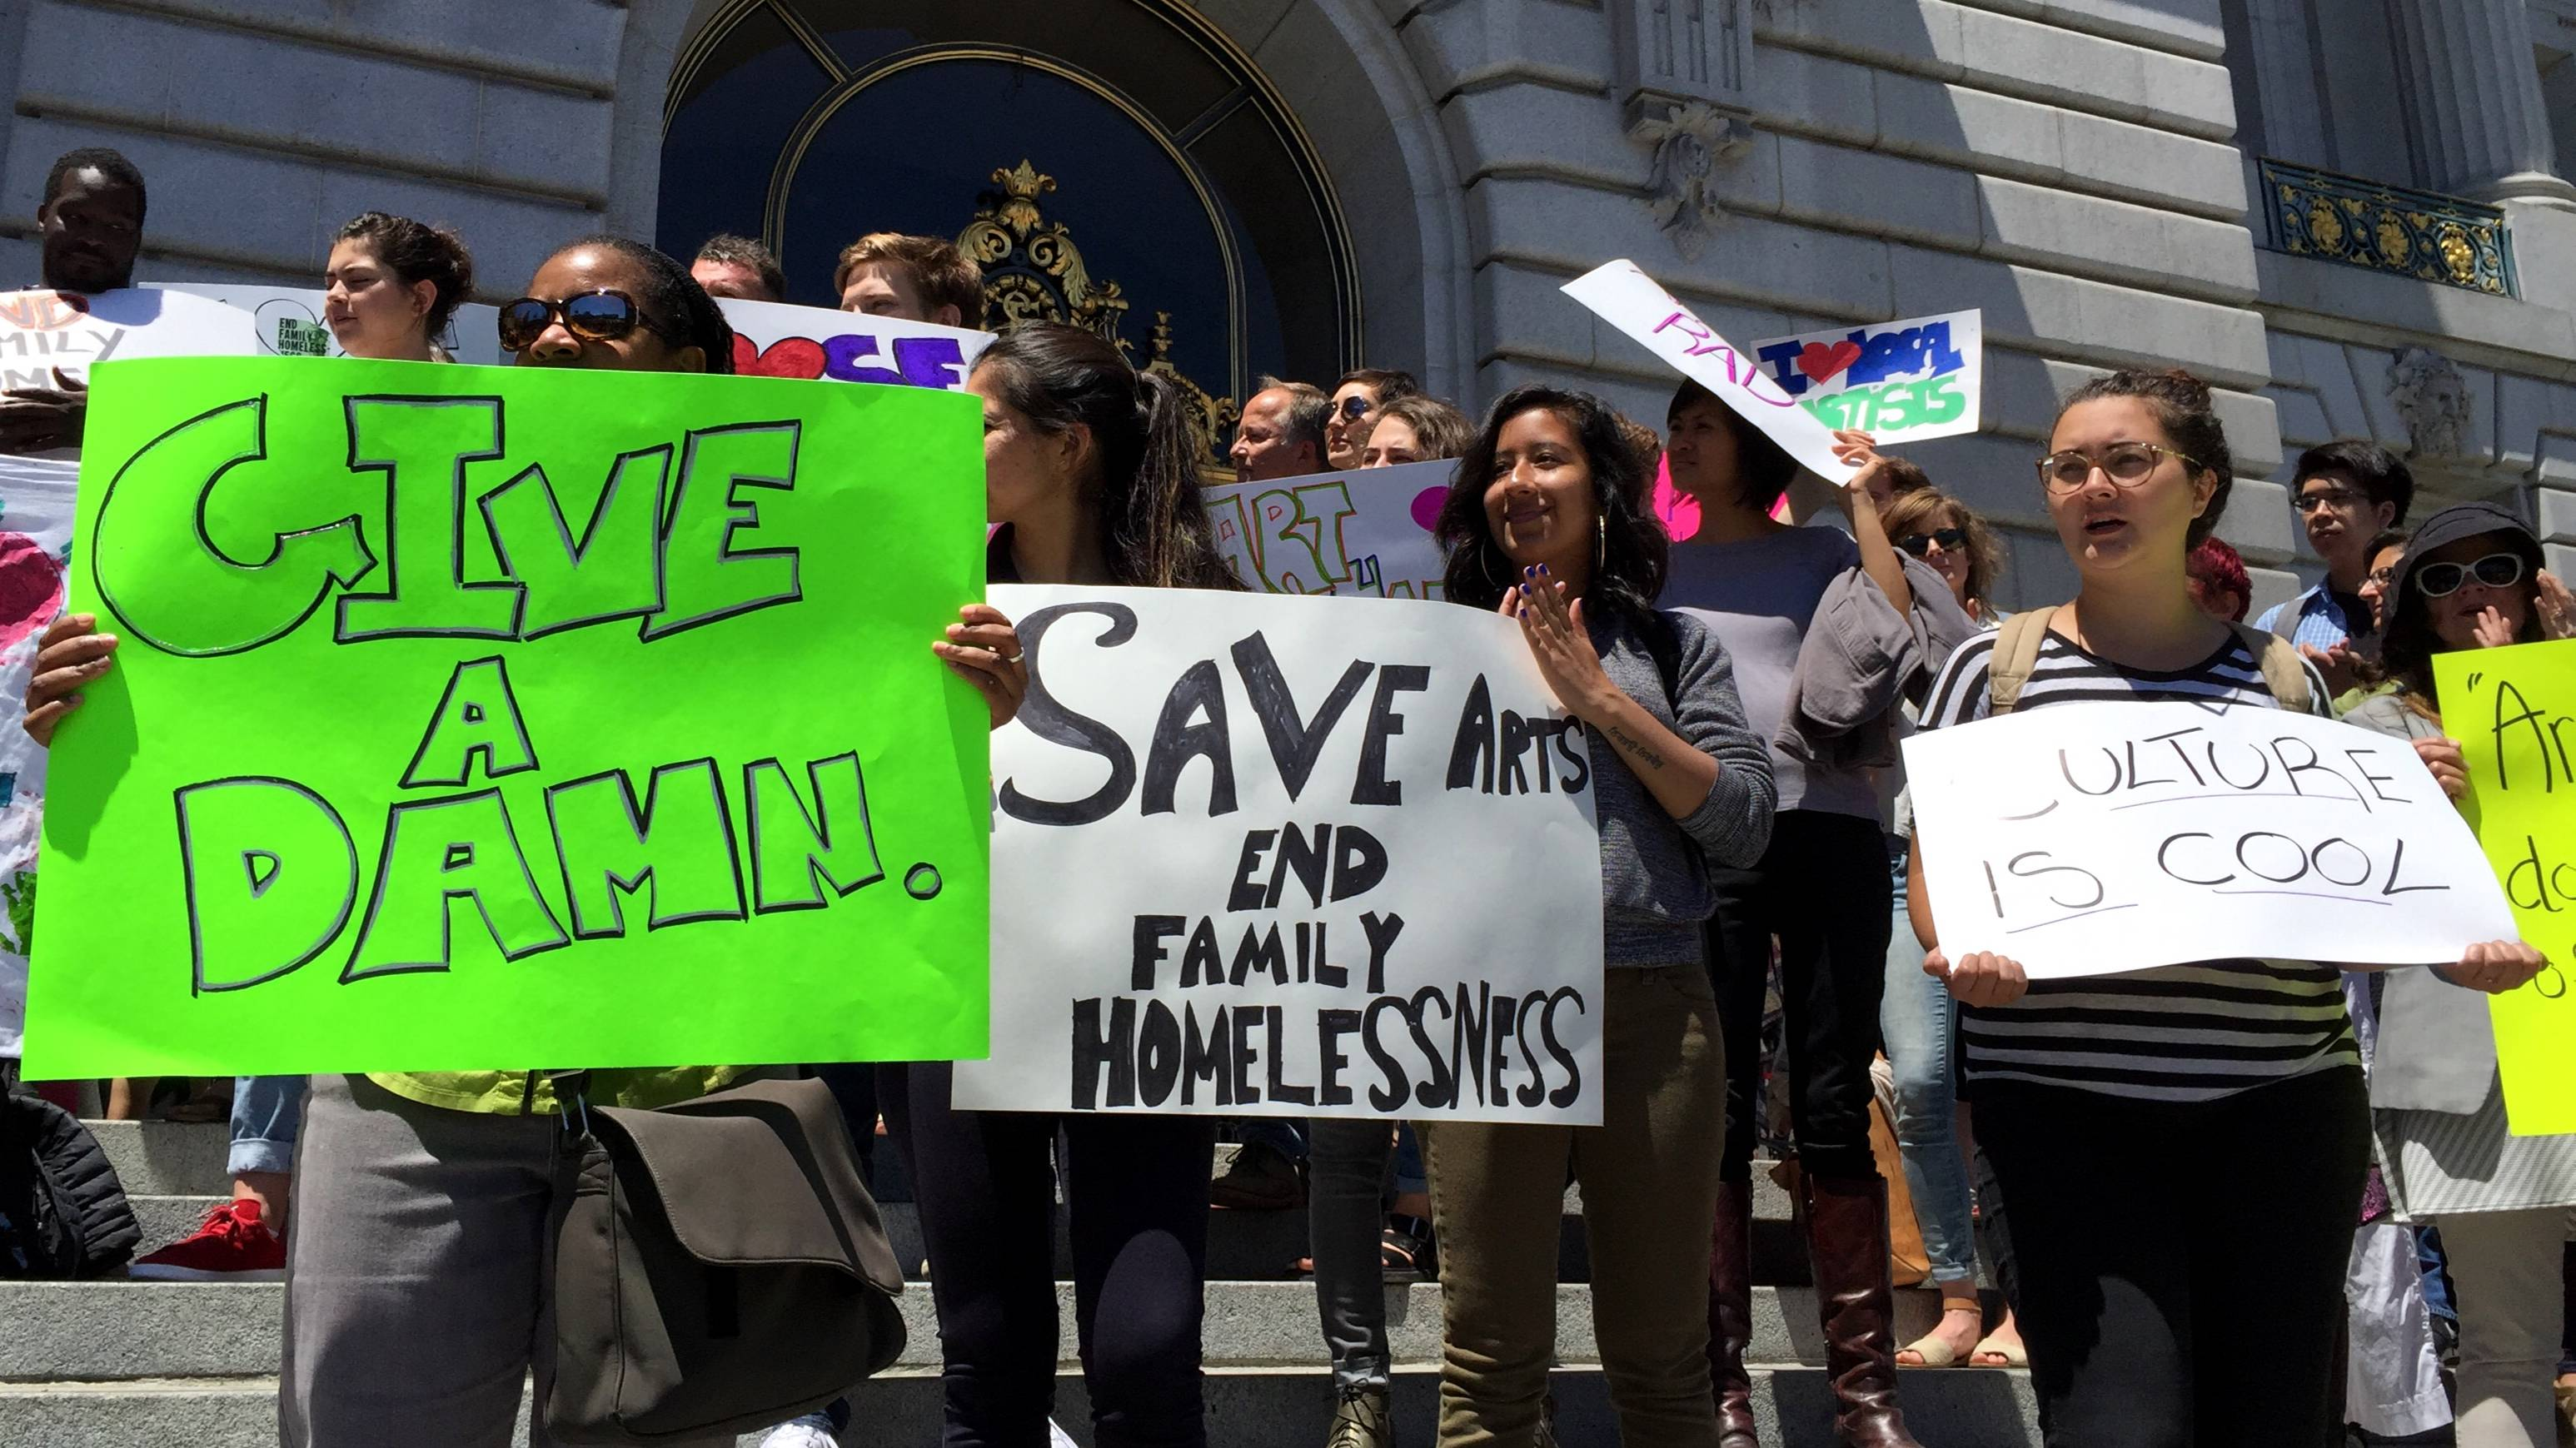 Supporters of a new ballot measure proposal to restore funding from the city's hotel tax to support arts organizations and homeless services participate in a rally at San Francisco City Hall